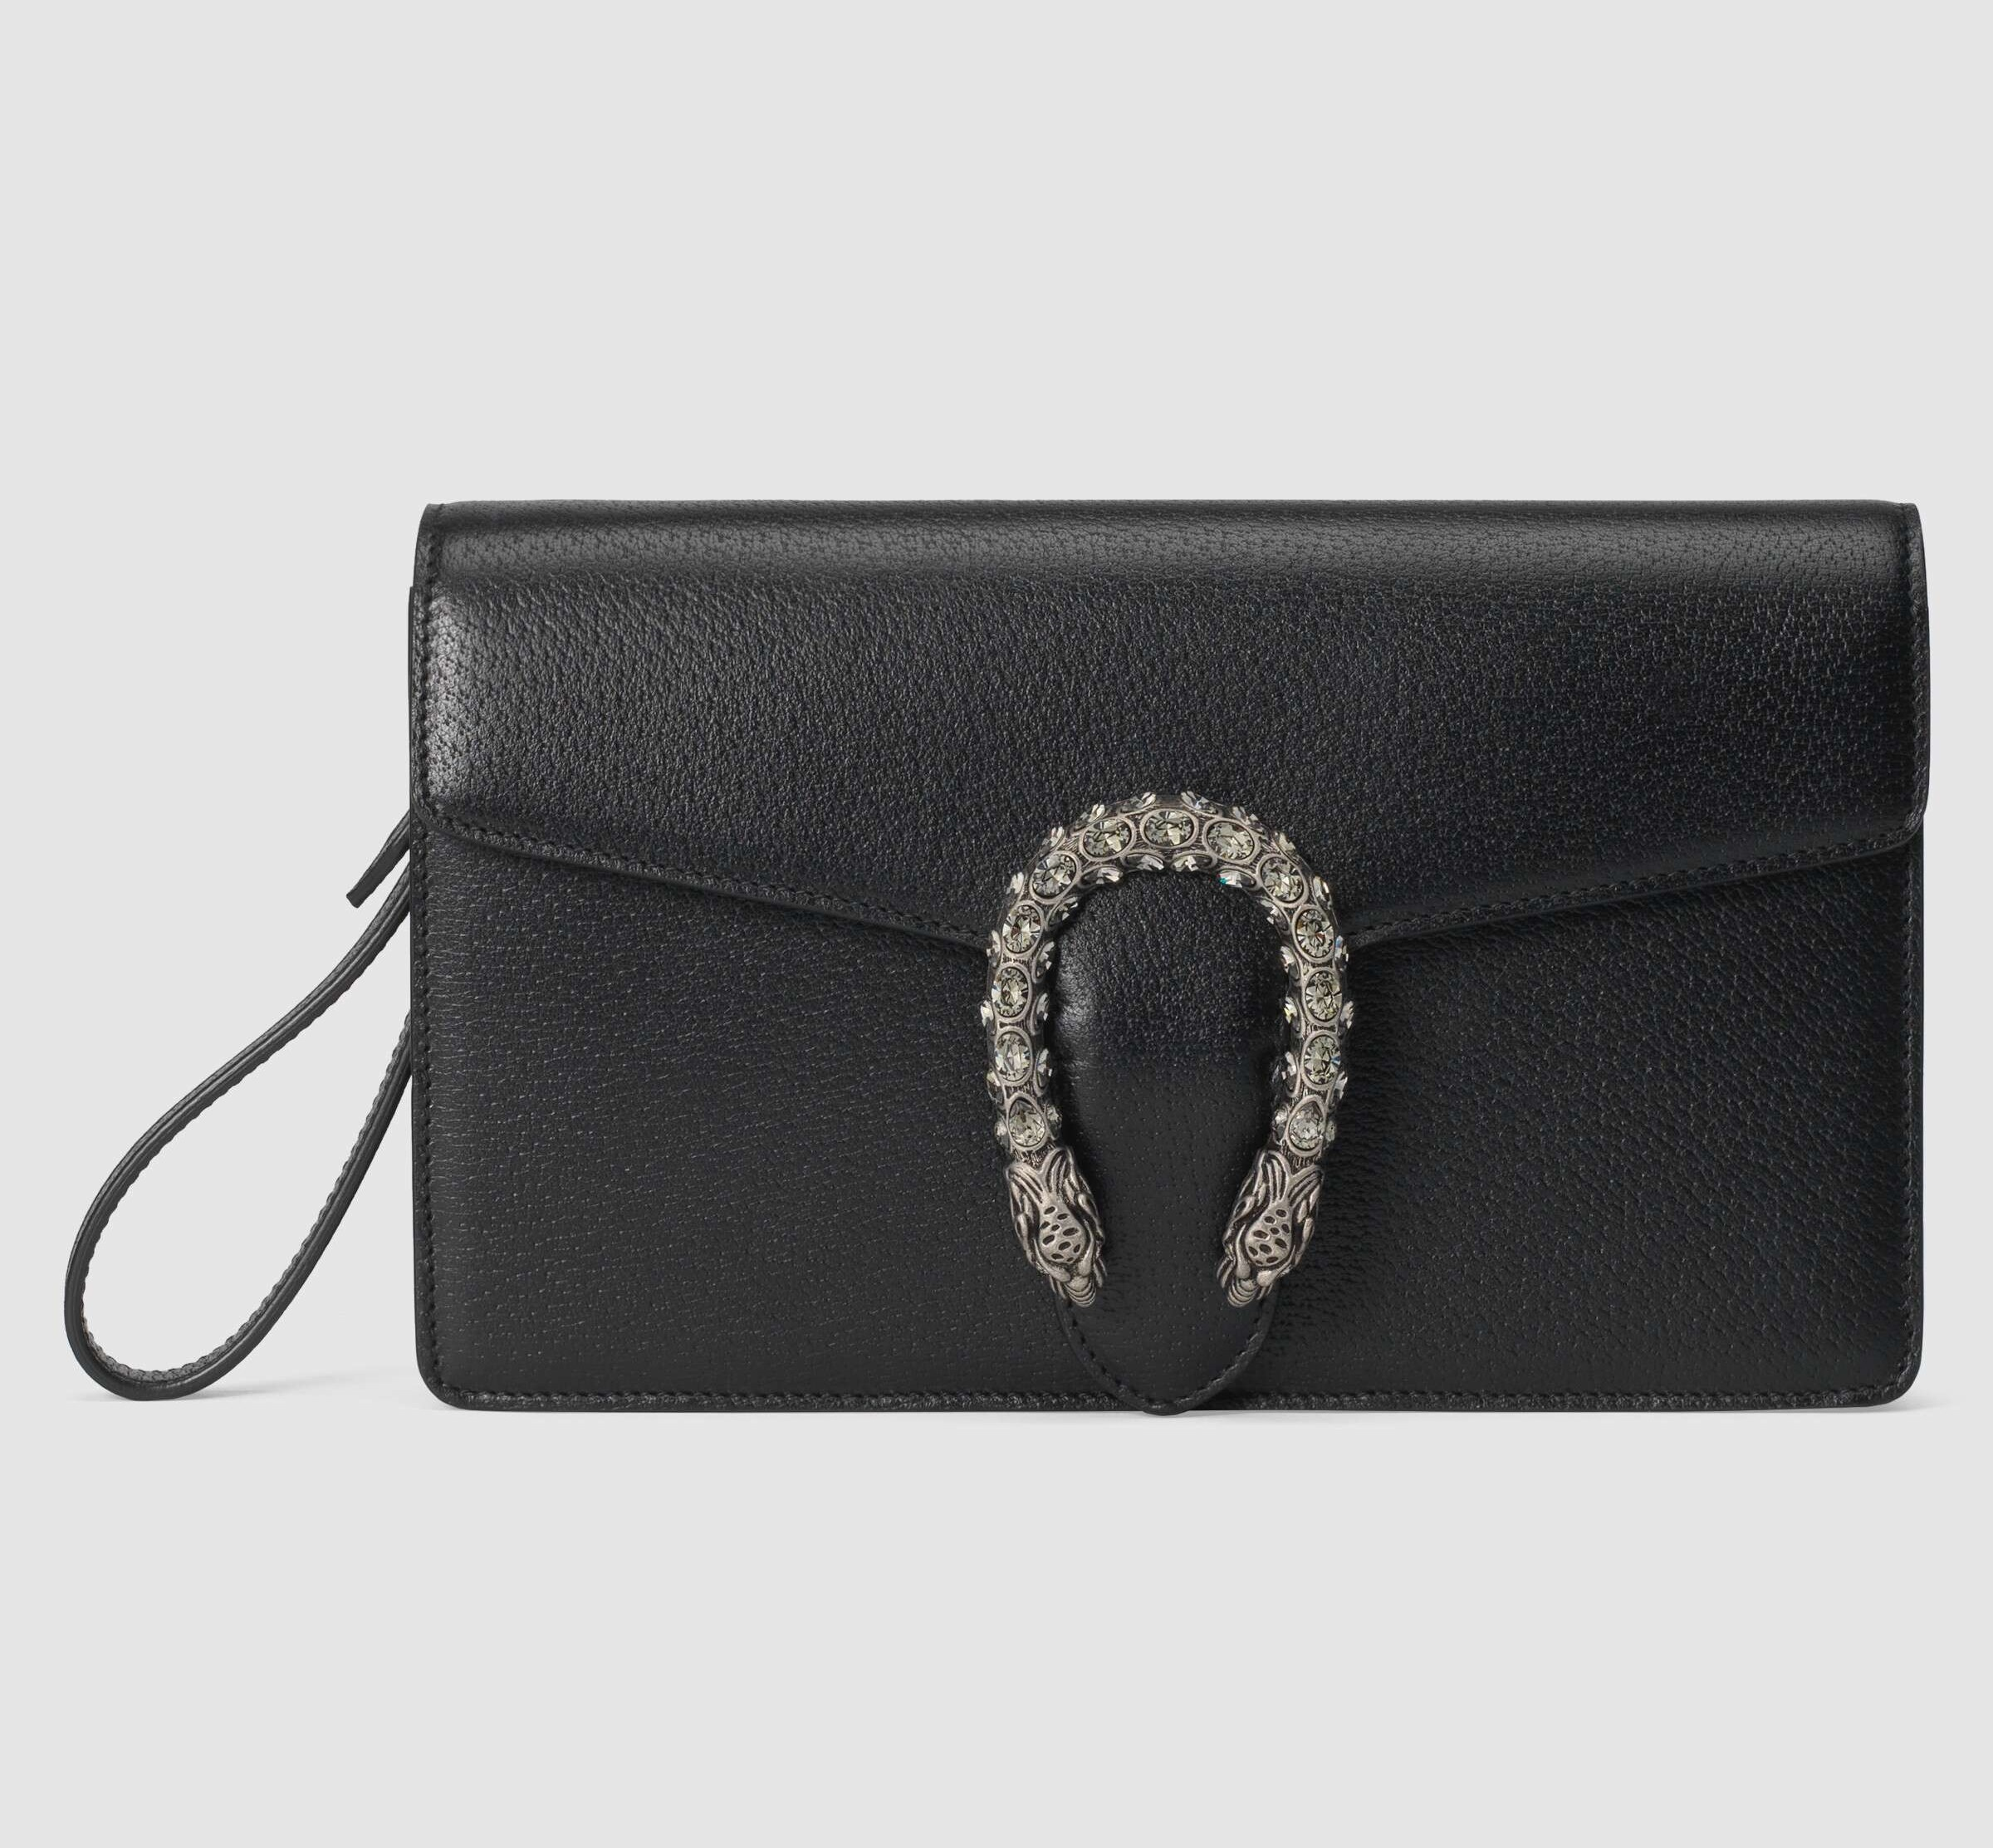 Gucci Dionysus Leather Clutch 621197 Black